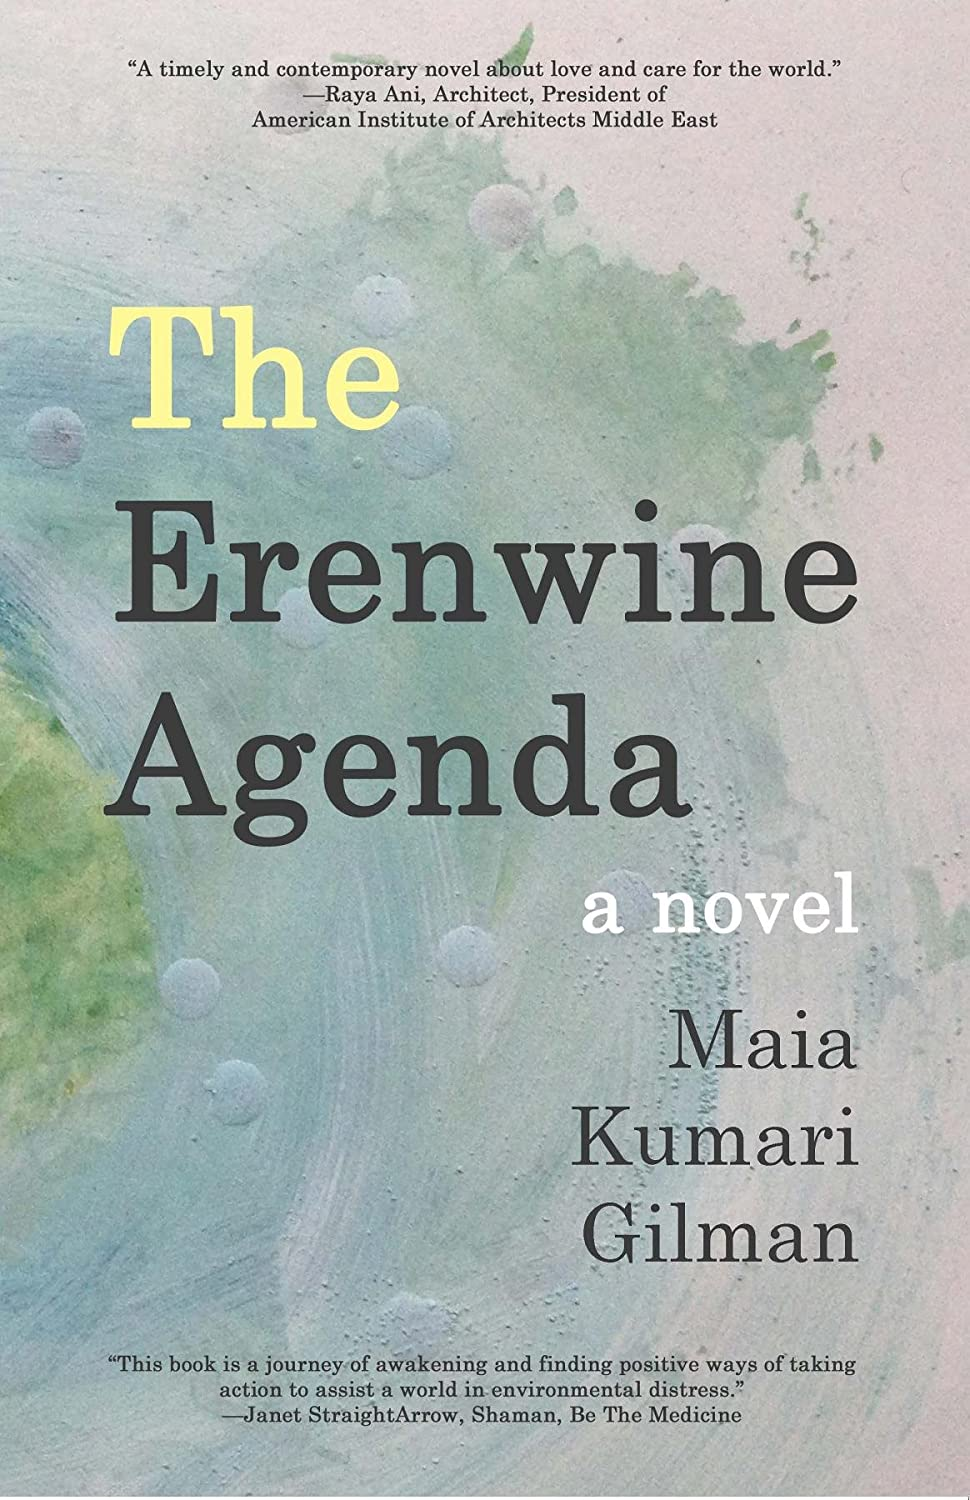 The Erenwine Agenda: a novel (English Edition) eBook: Maia ...